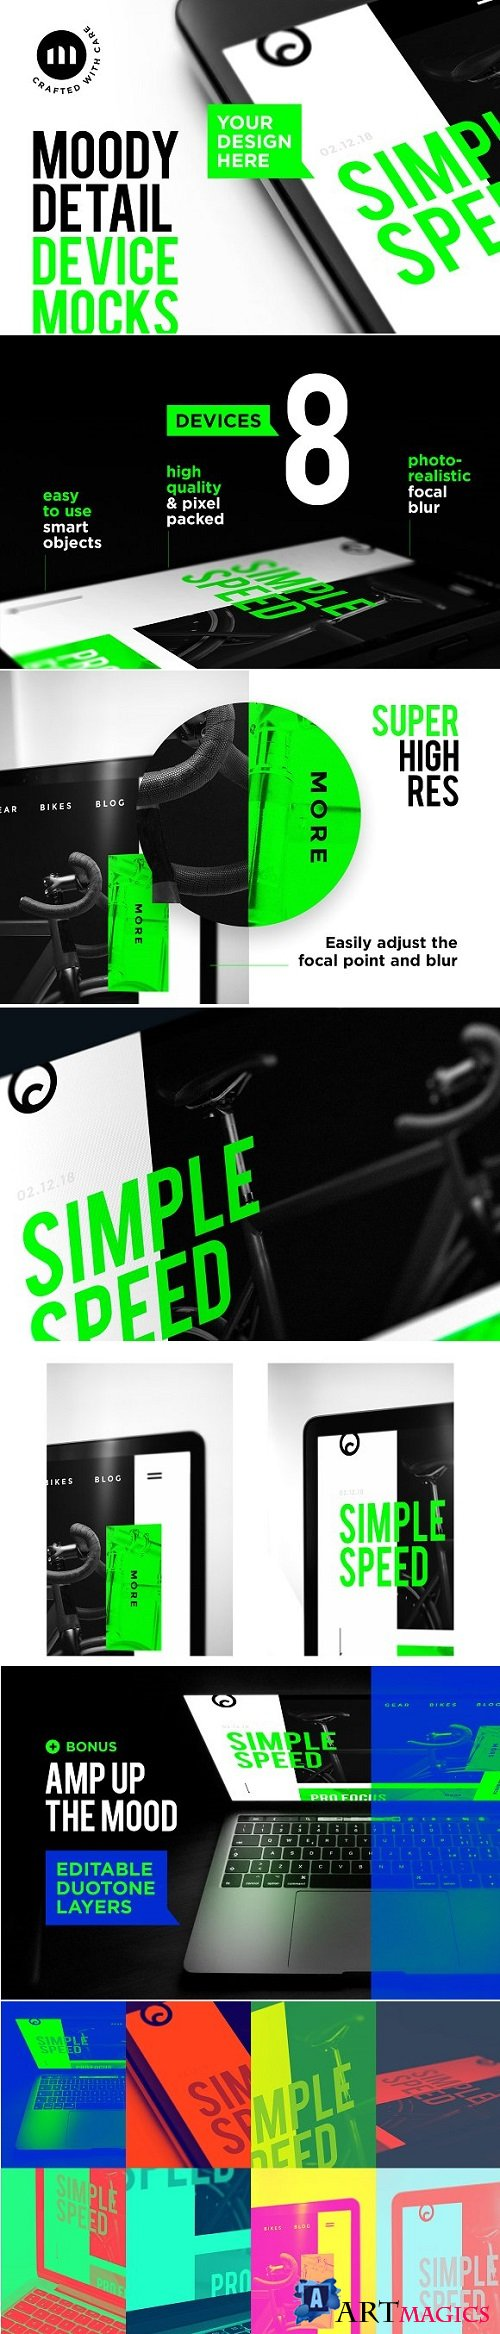 Moody Device Detail Mockups - 2160874